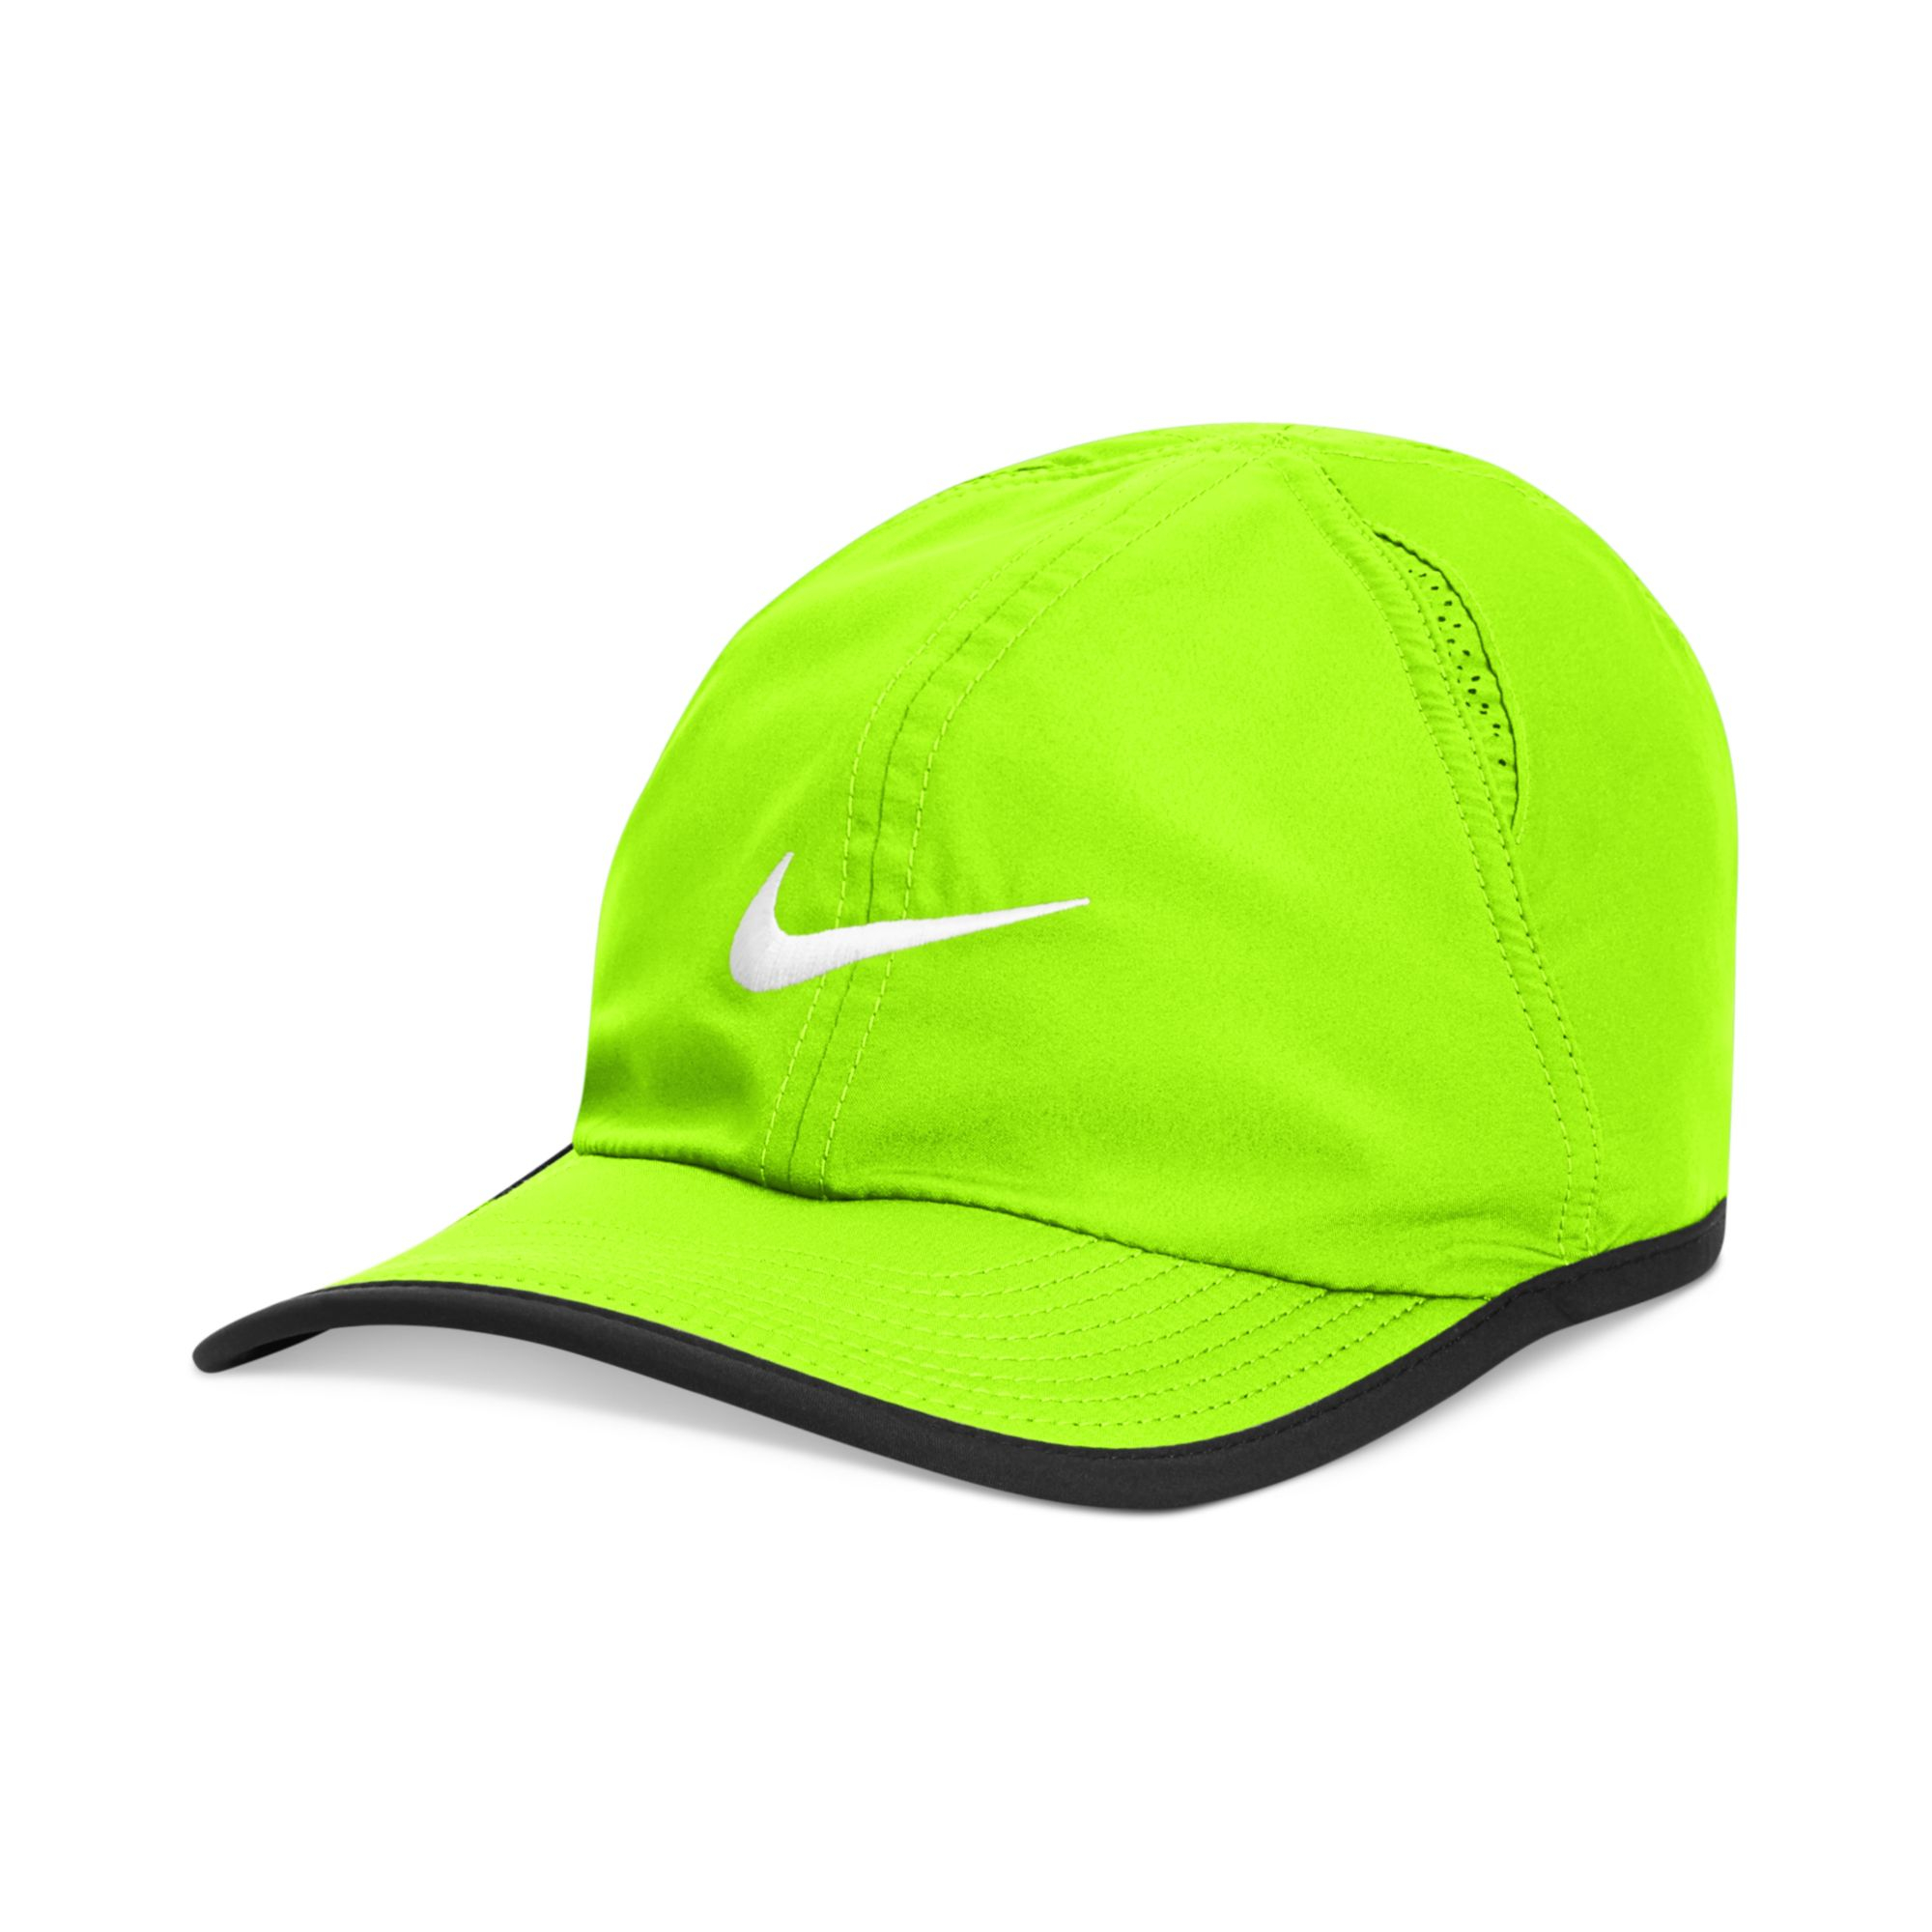 nike hat green dri fit. Black Bedroom Furniture Sets. Home Design Ideas